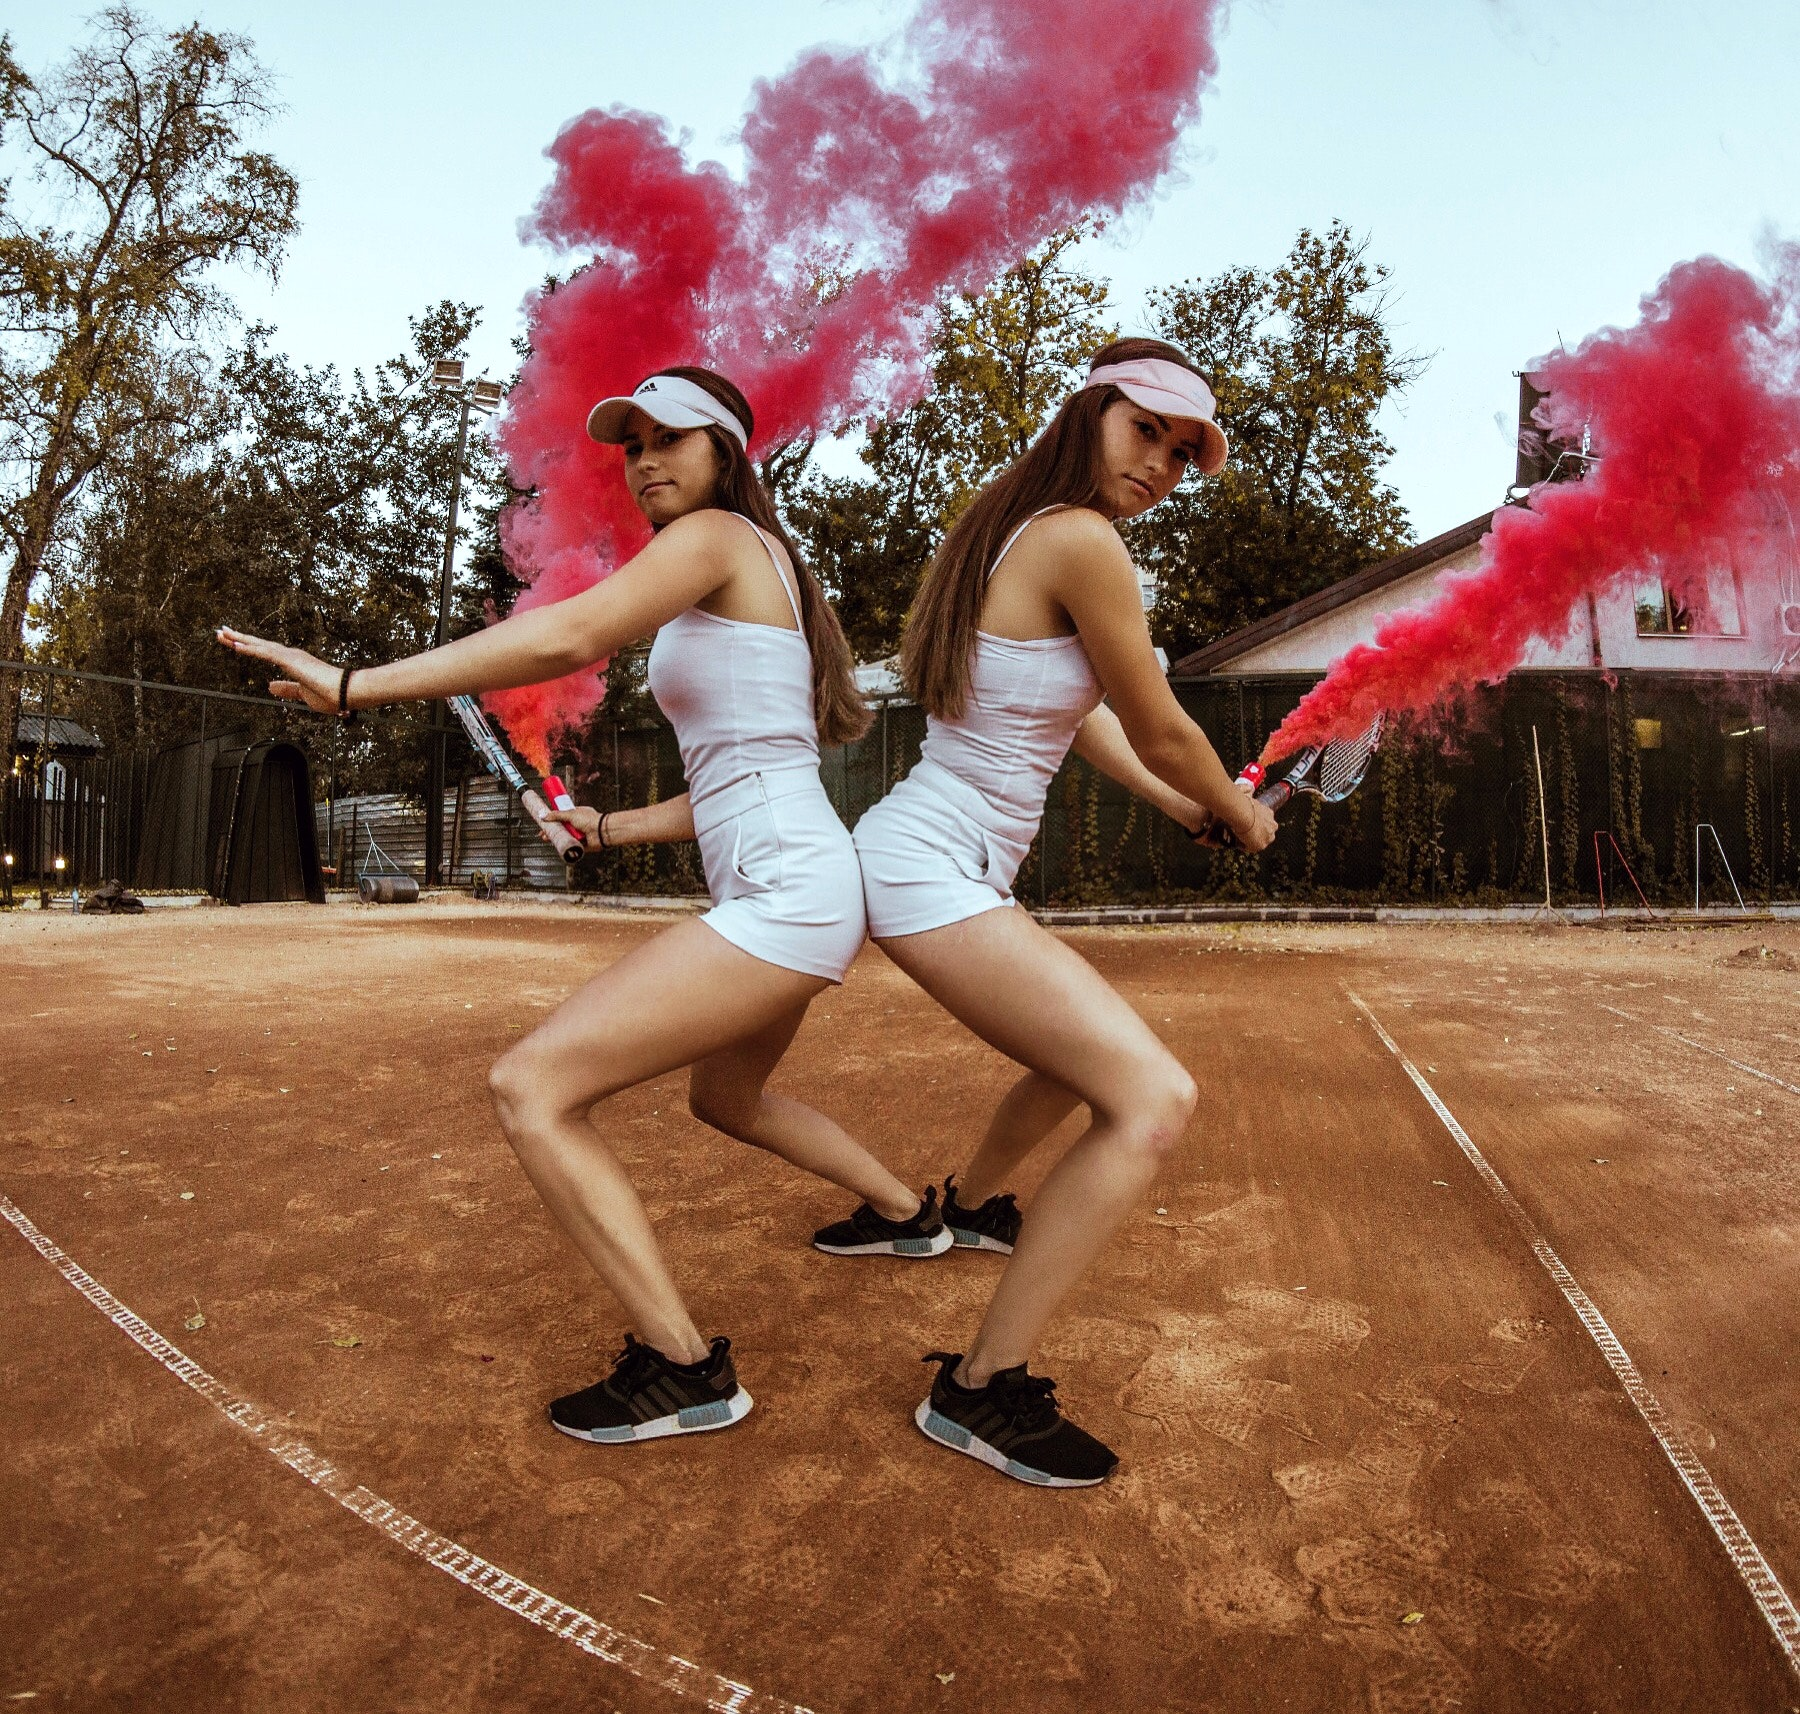 Twins Of Miami teaches tennis lessons in Coral Gables, FL